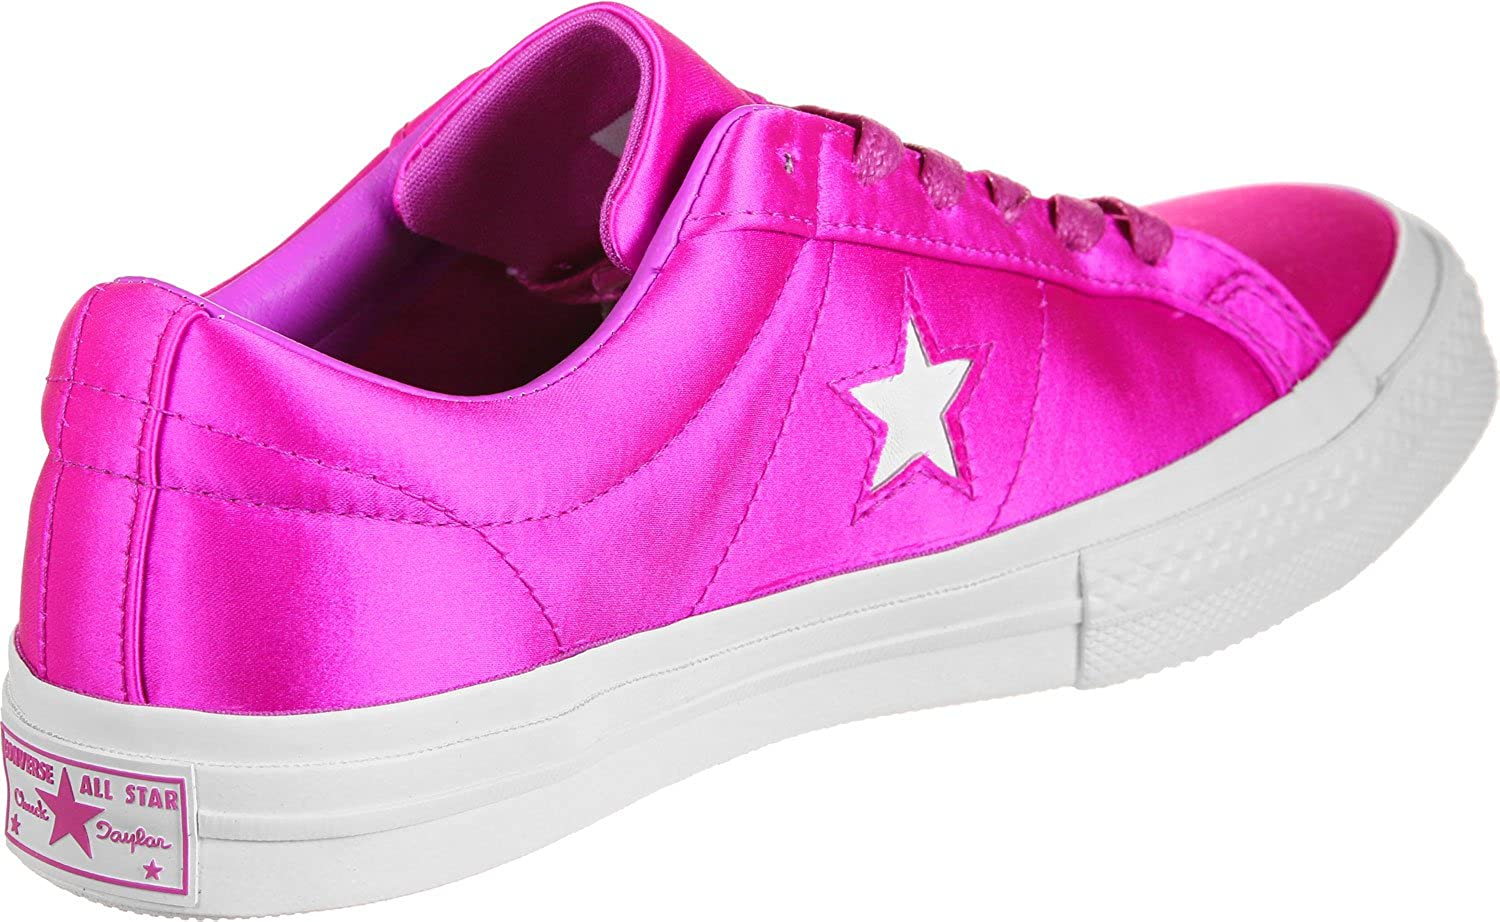 Converse Men's One Star Suede Ox Sneakers Neon Pink 9561